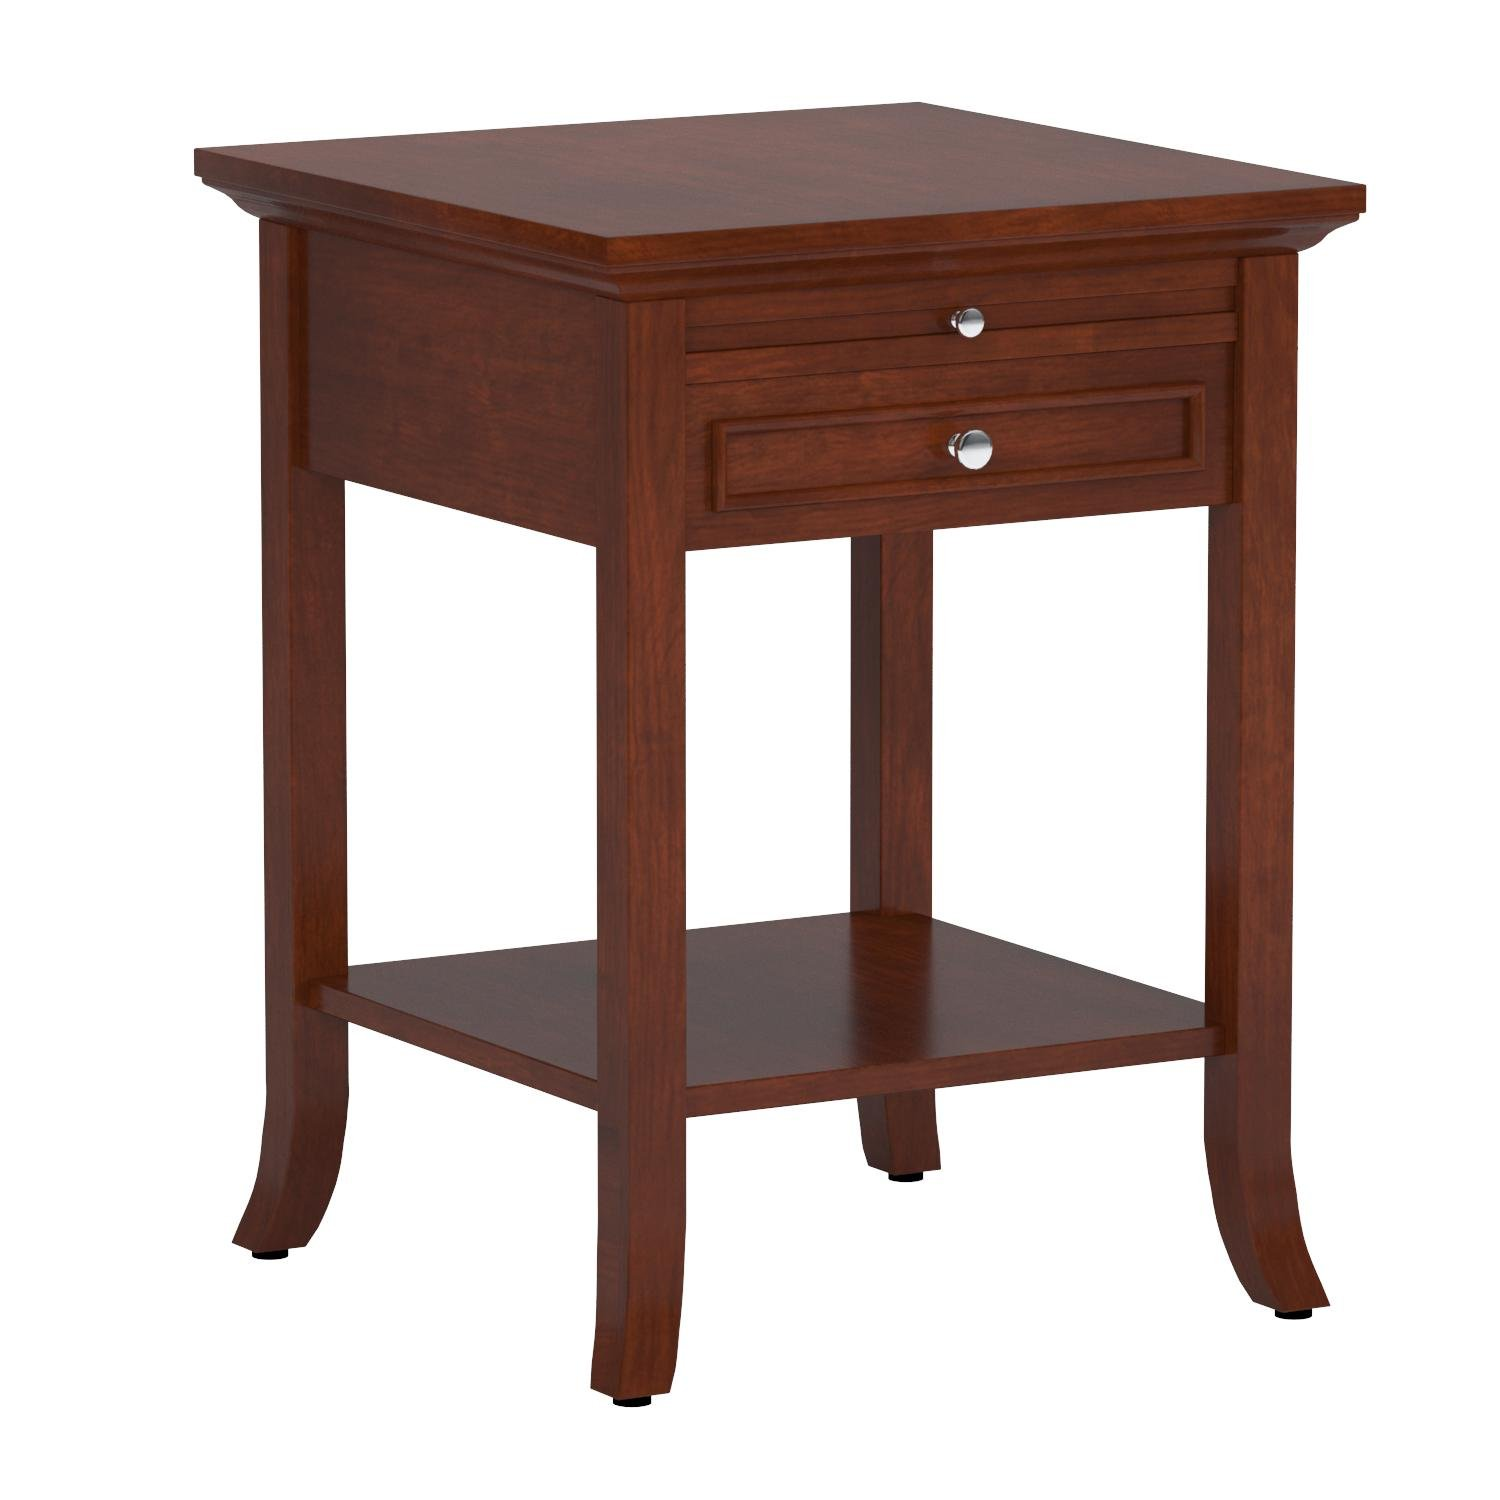 Convenience Concepts American Heritage Collection Logan End Table with Drawer and Slide, Mahogany by Convenience Concepts (Image #4)